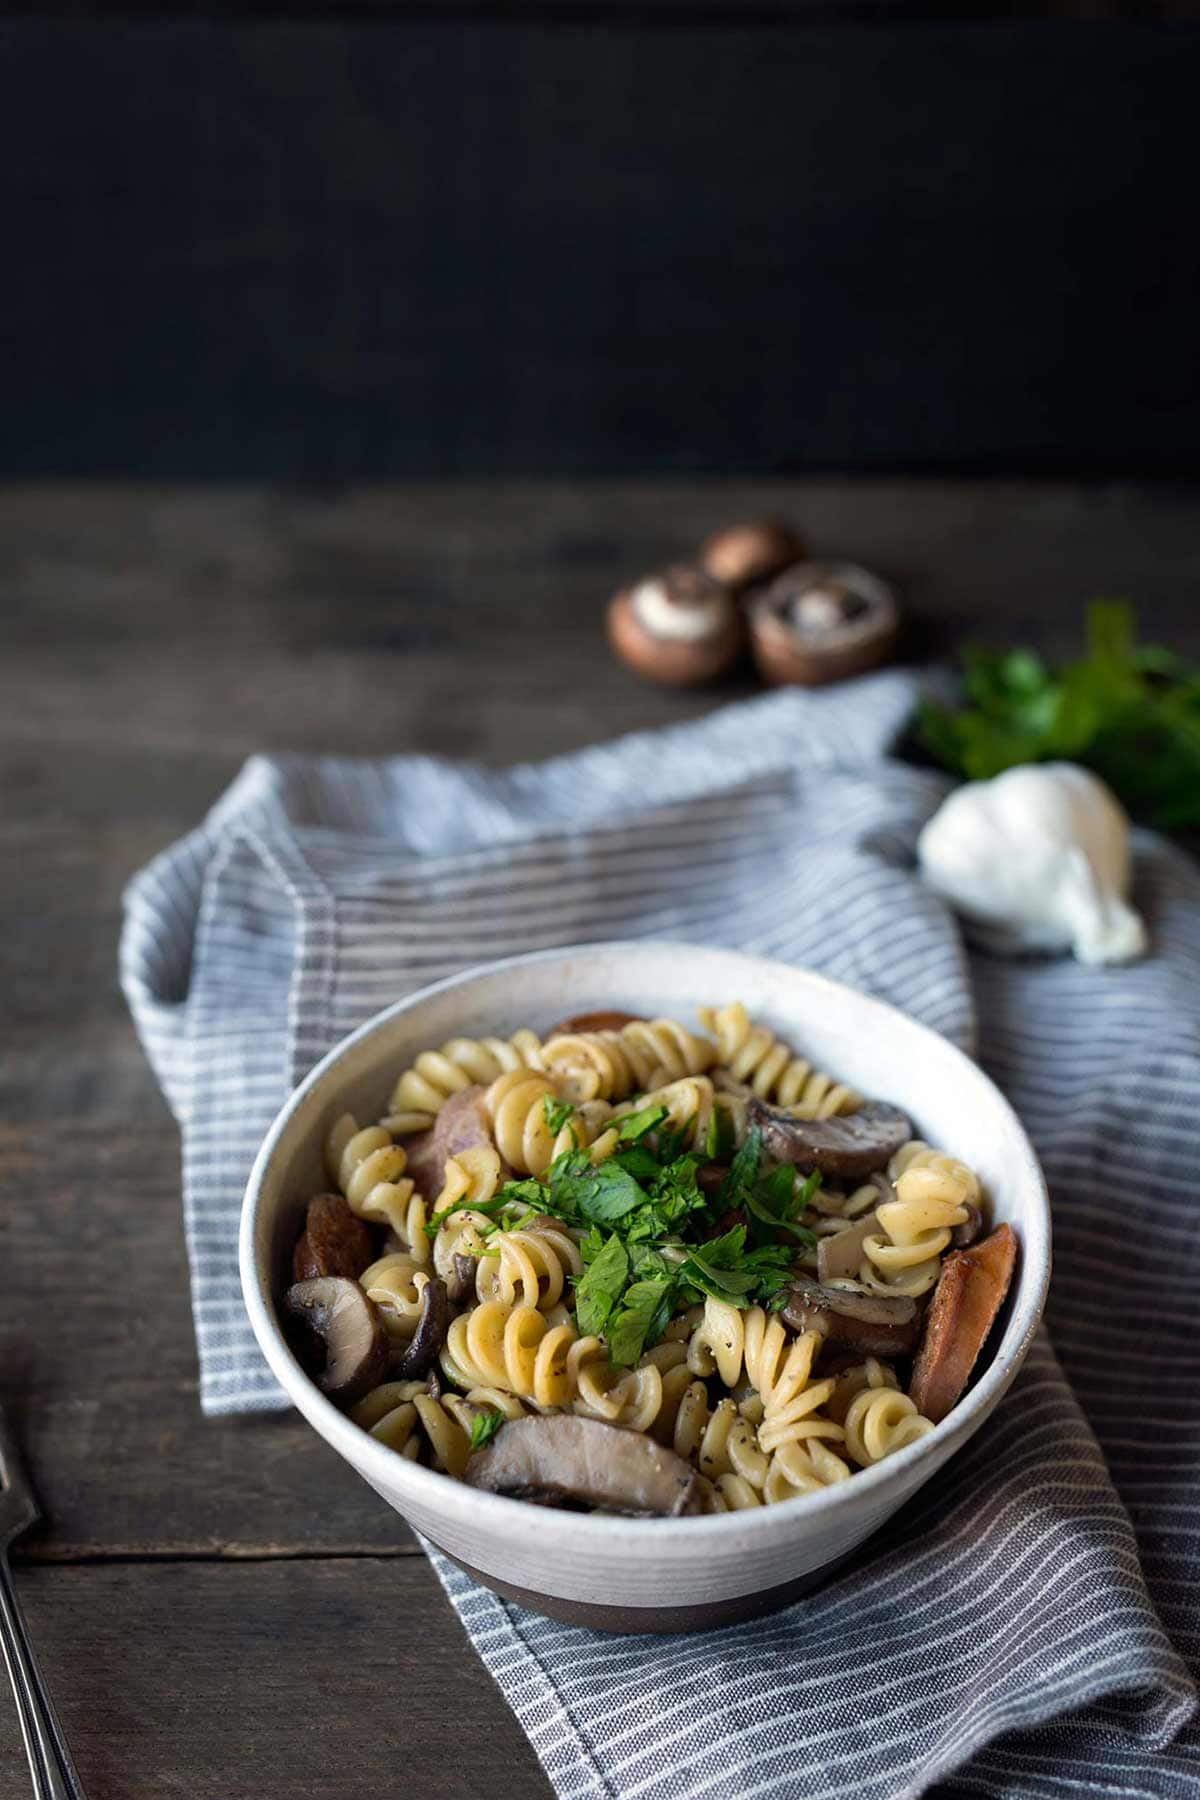 Closeup of mushroom pasta topped with parsley, surrounded by mushrooms and garlic.